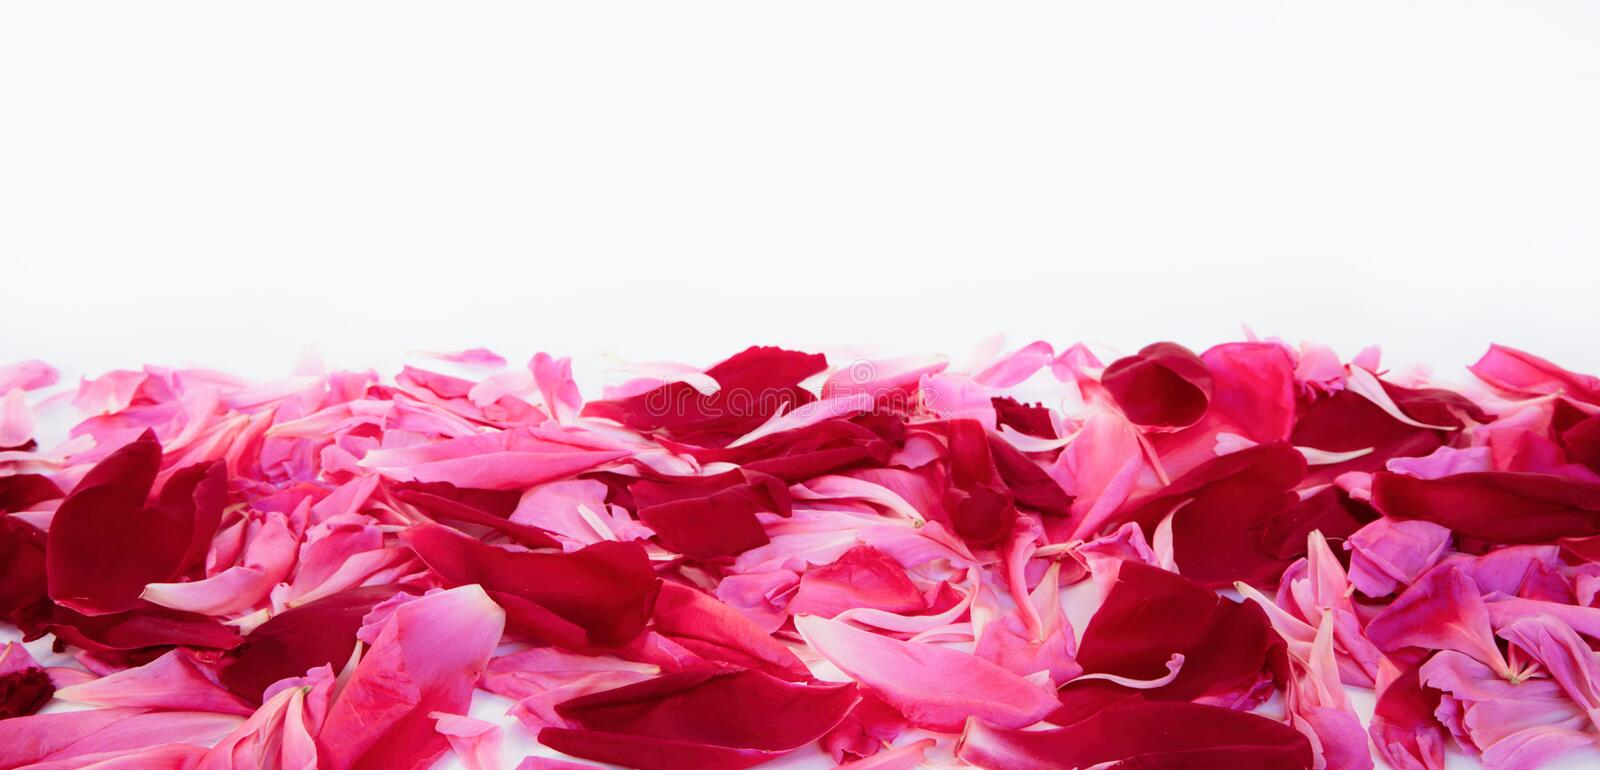 Pink and red petals of peony flowers lying on white background royalty free stock image